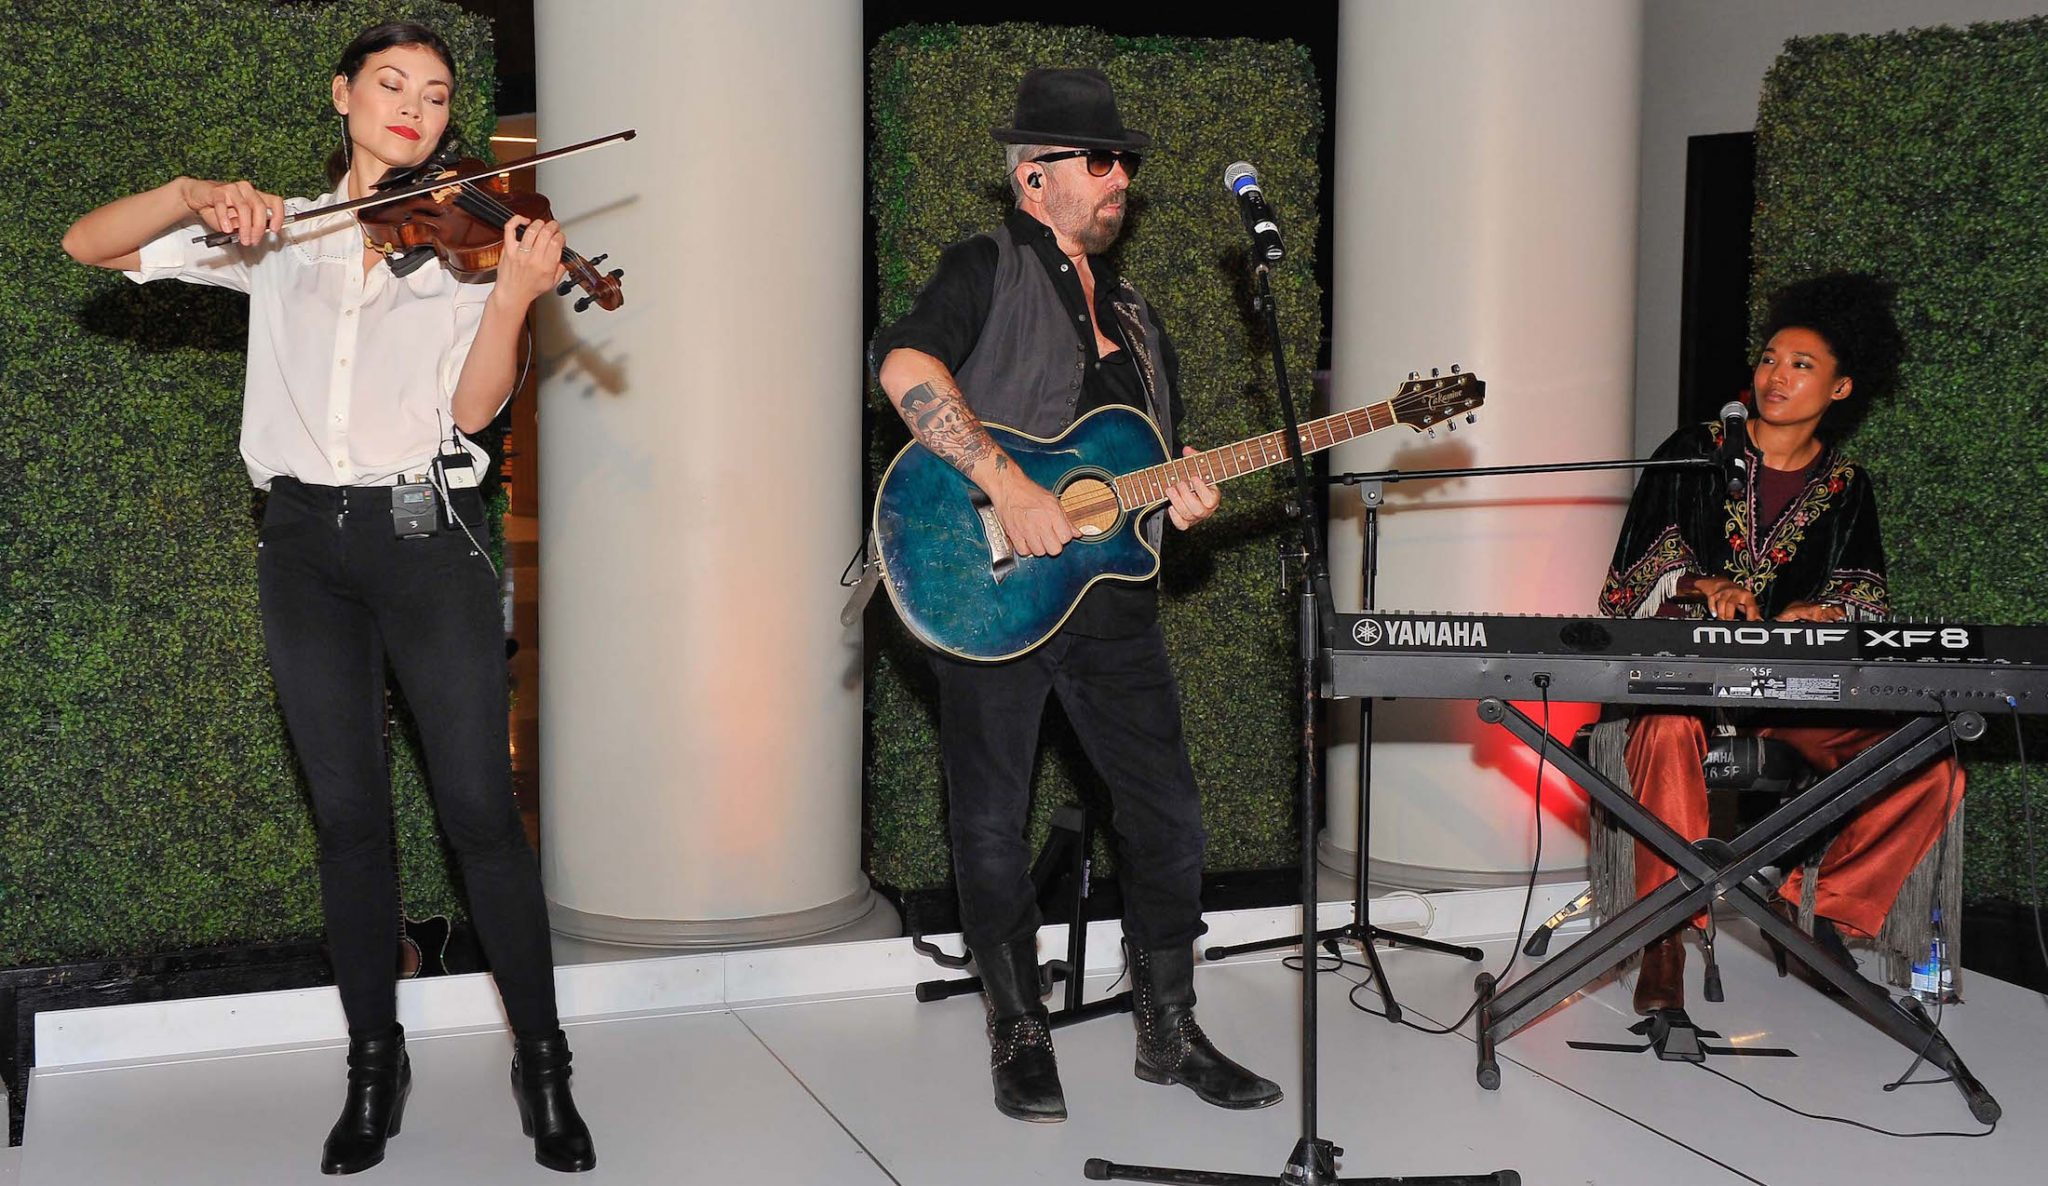 Dave Stewart performed for Stand Up 2 Cancer in San Francisco on 10th September